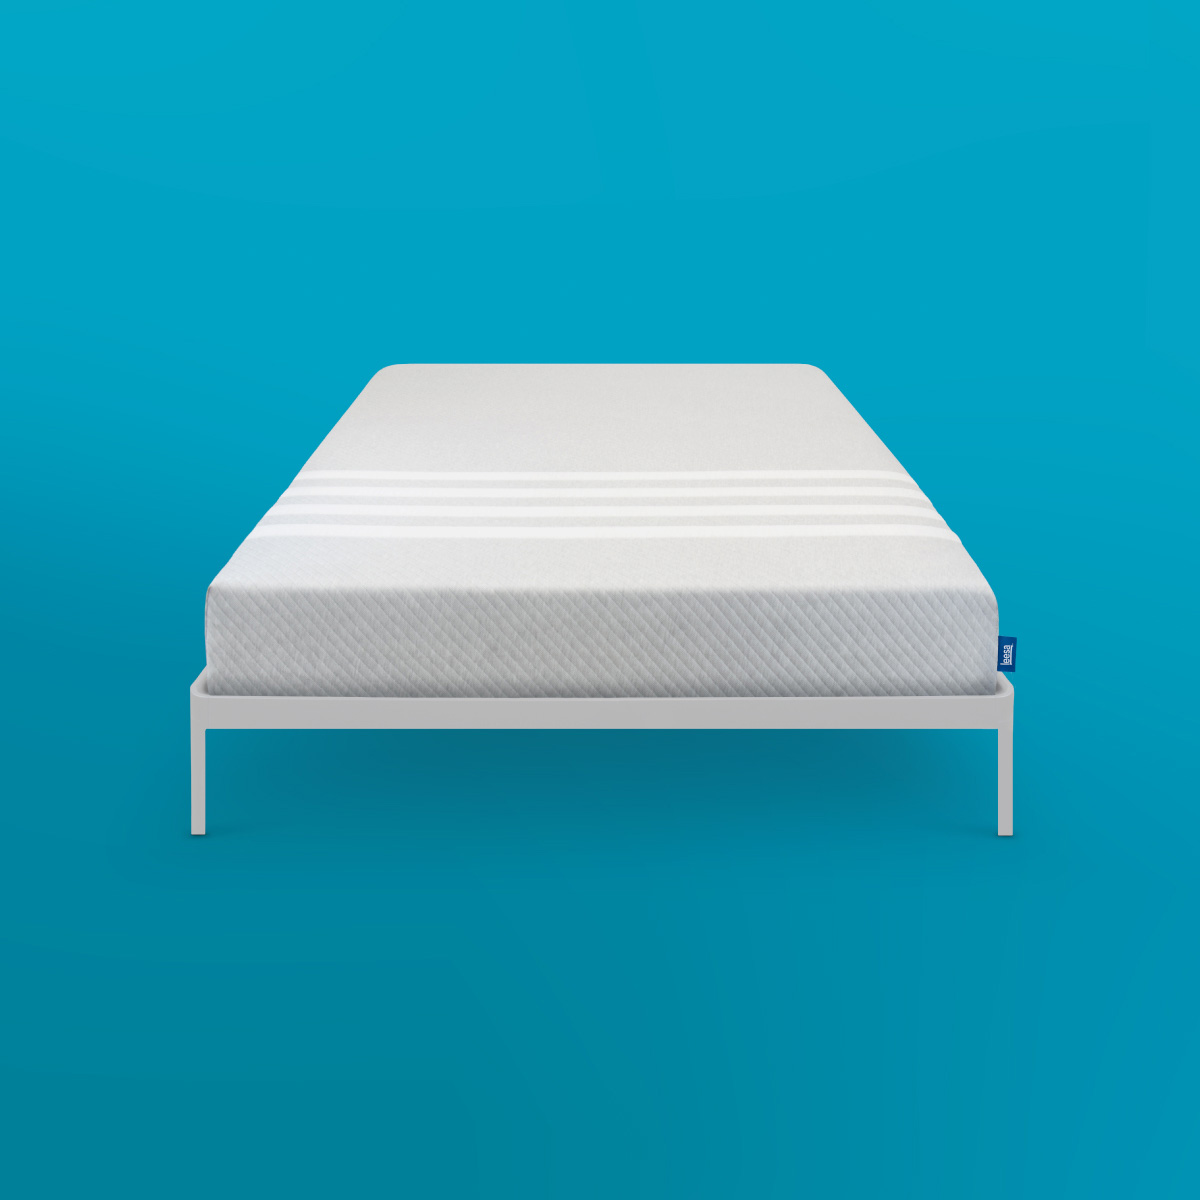 Best King Size Mattress | Leesa